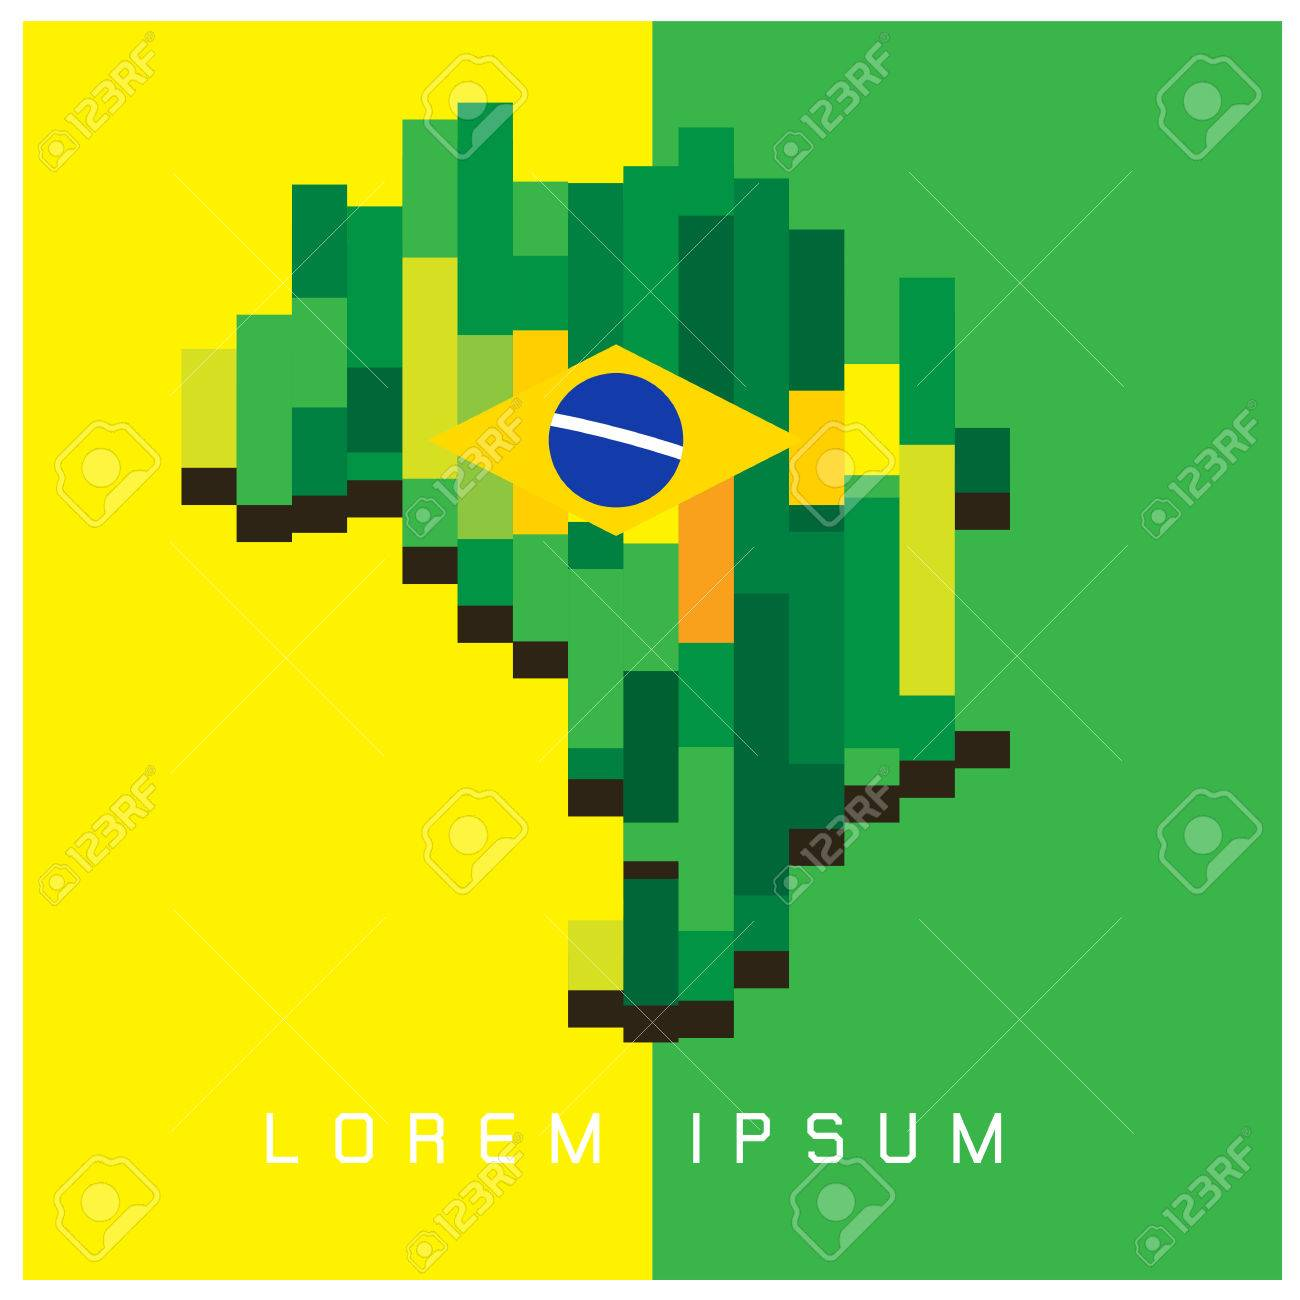 Brazil World Map With A Pixel Diamond Texture Vector Background – Map World Brazil